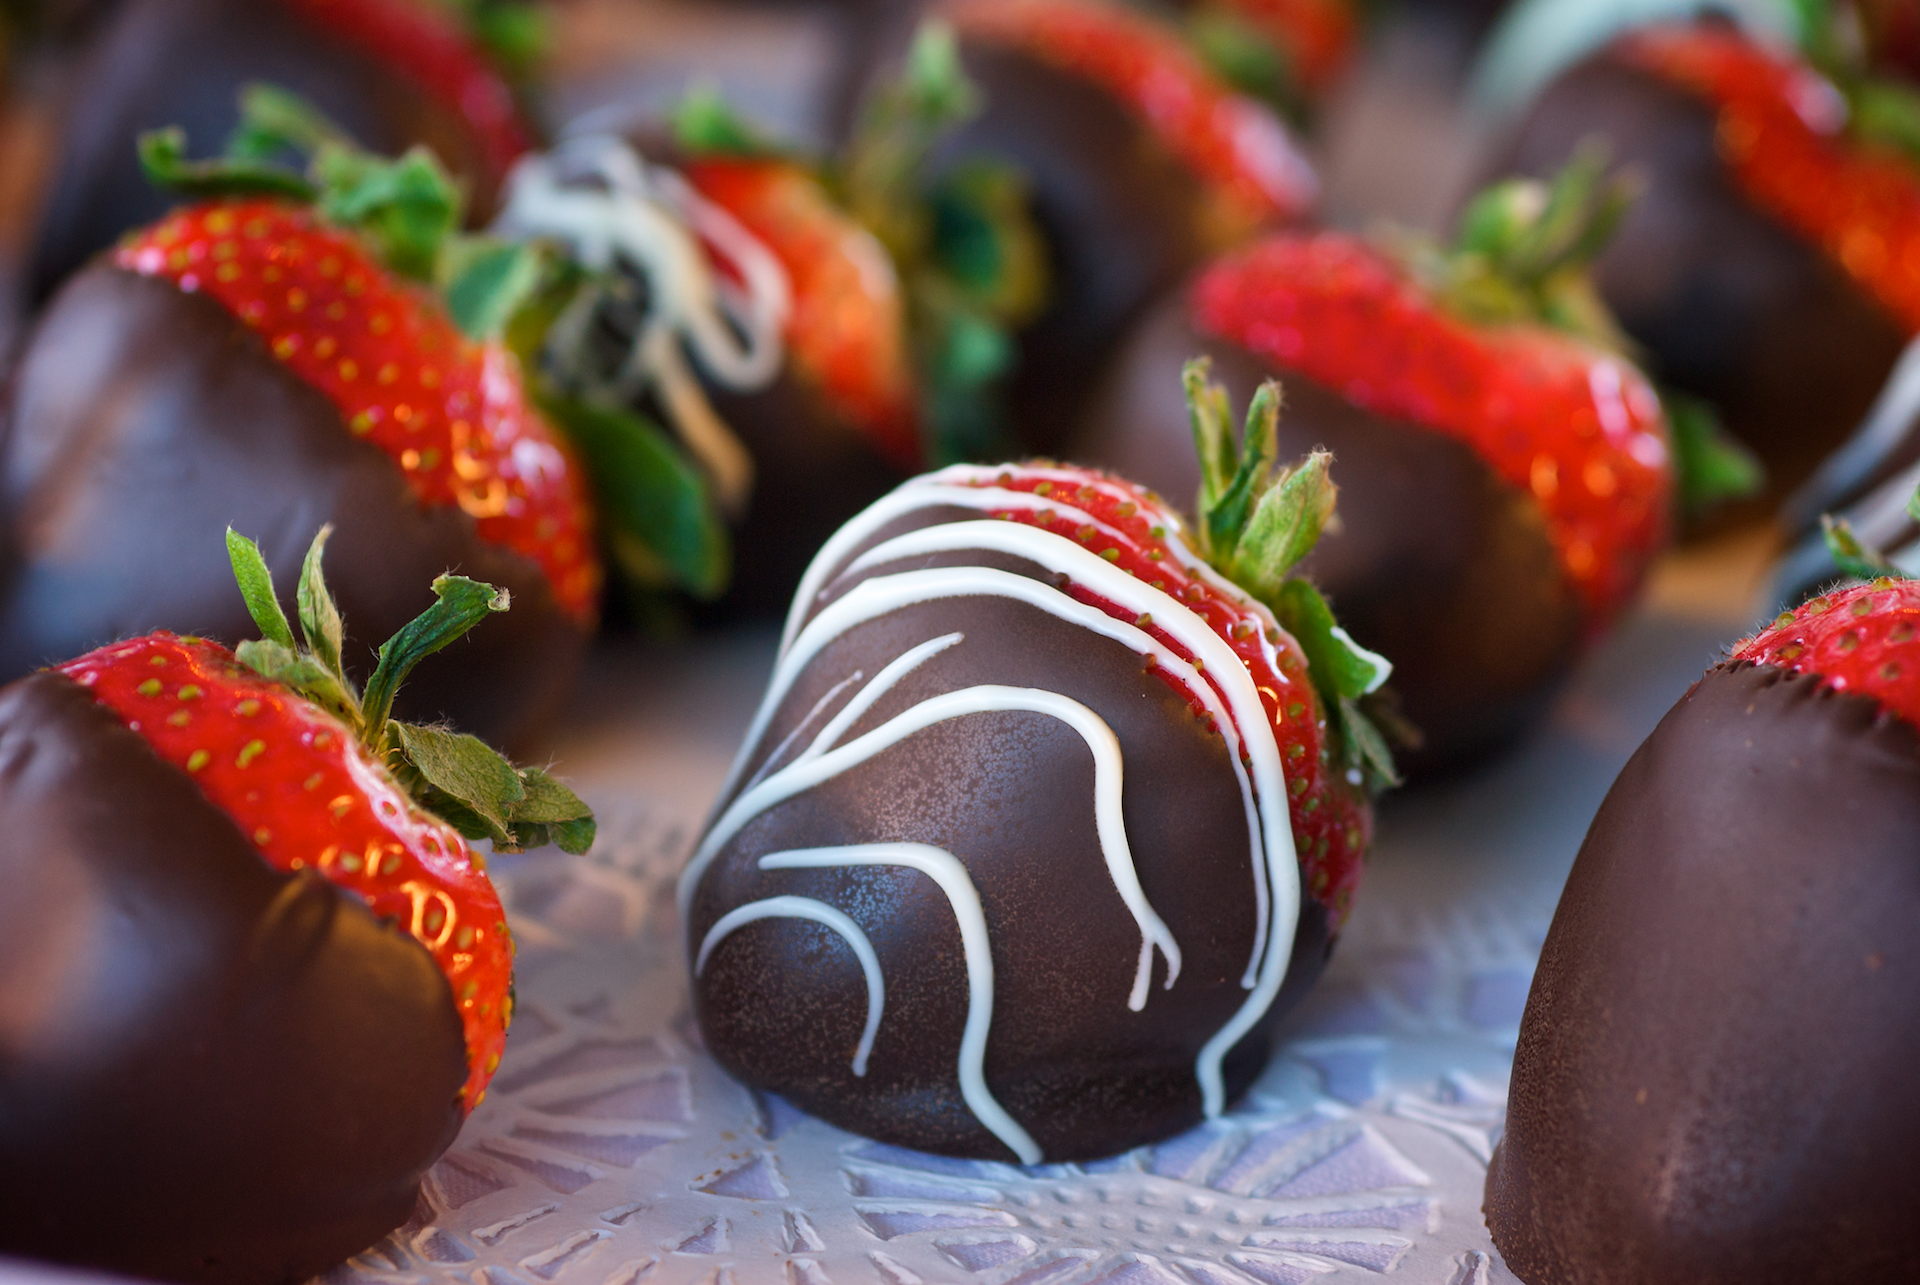 This recipe features the elegant combination of juicy fresh strawberries with rich, luxurious dark chocolate.